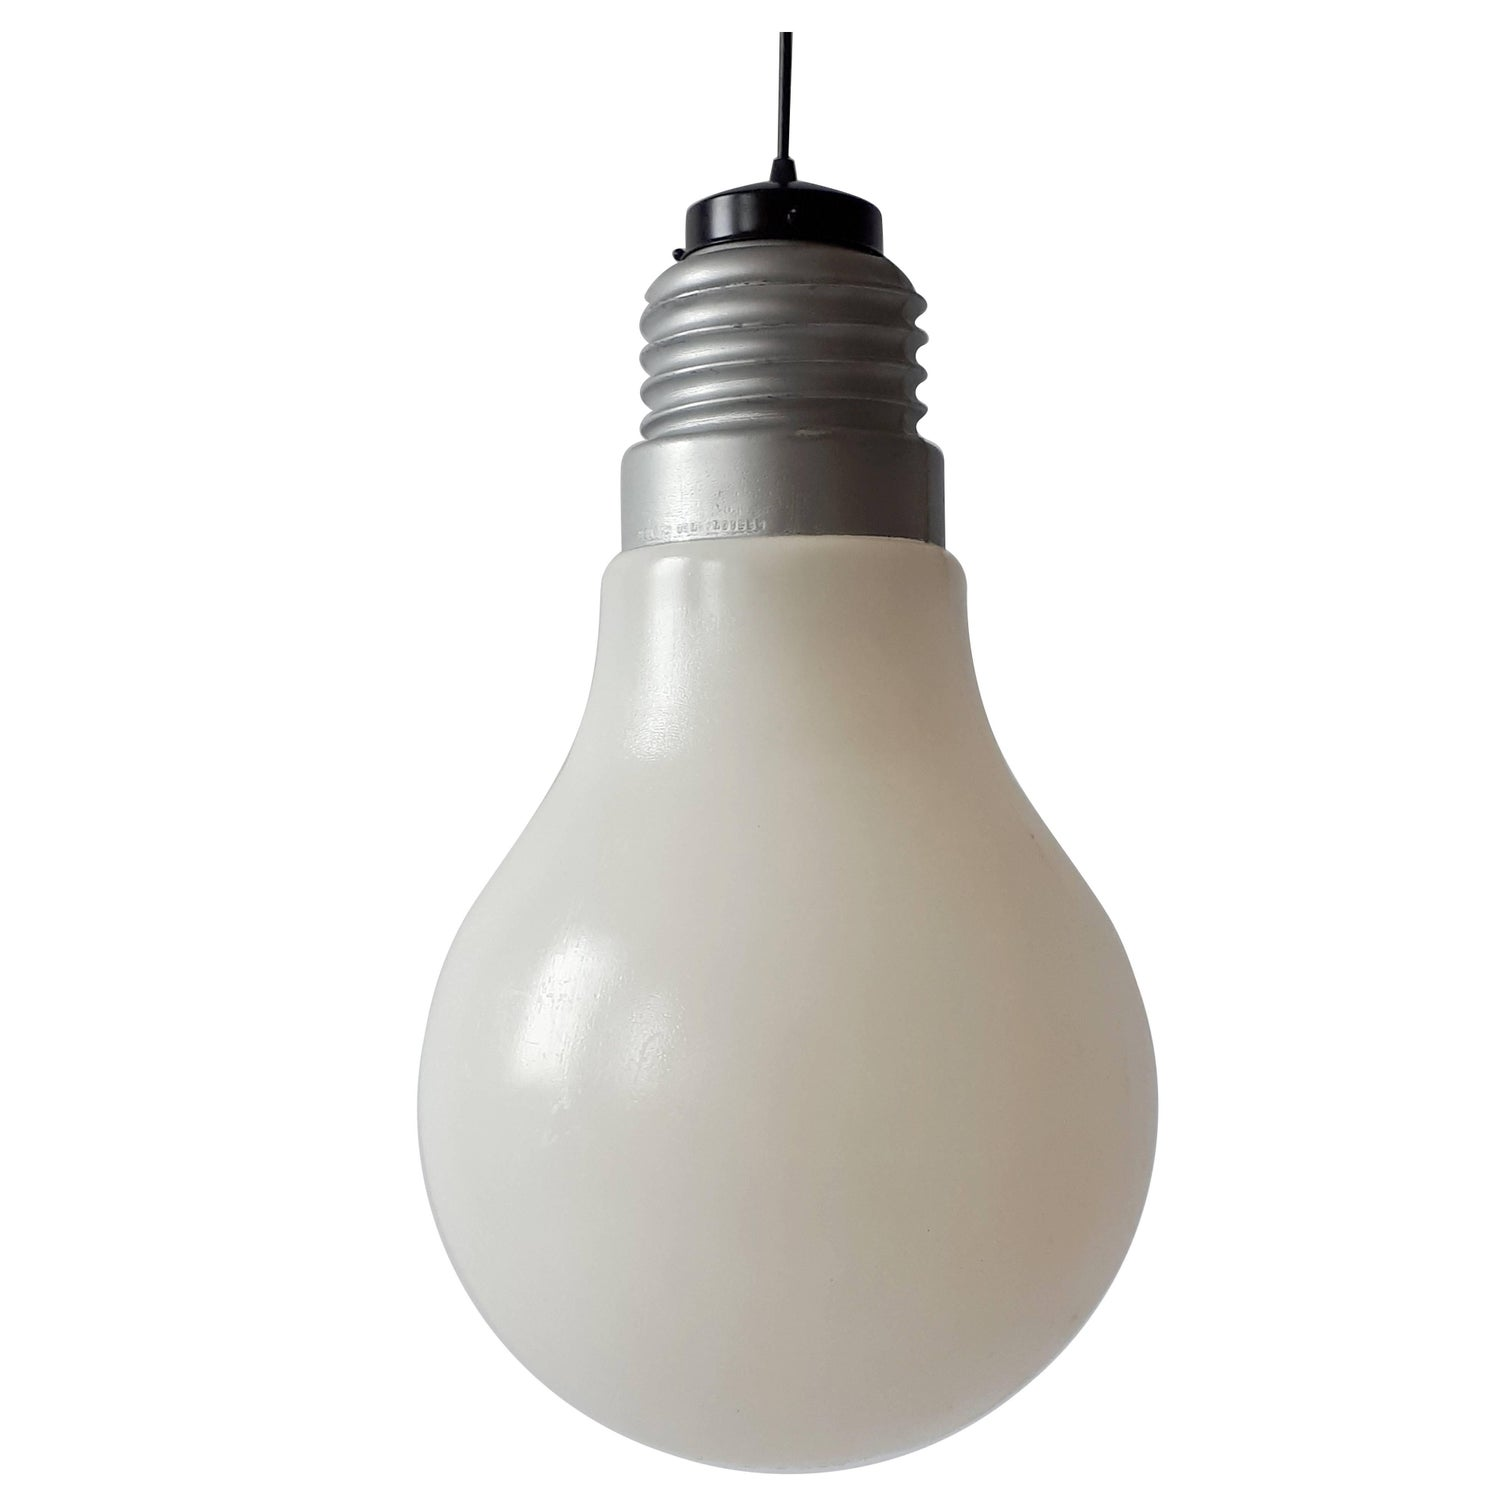 light preview products linea lamp pendant bulb with andante industrial led bn lifestyle liara di ed